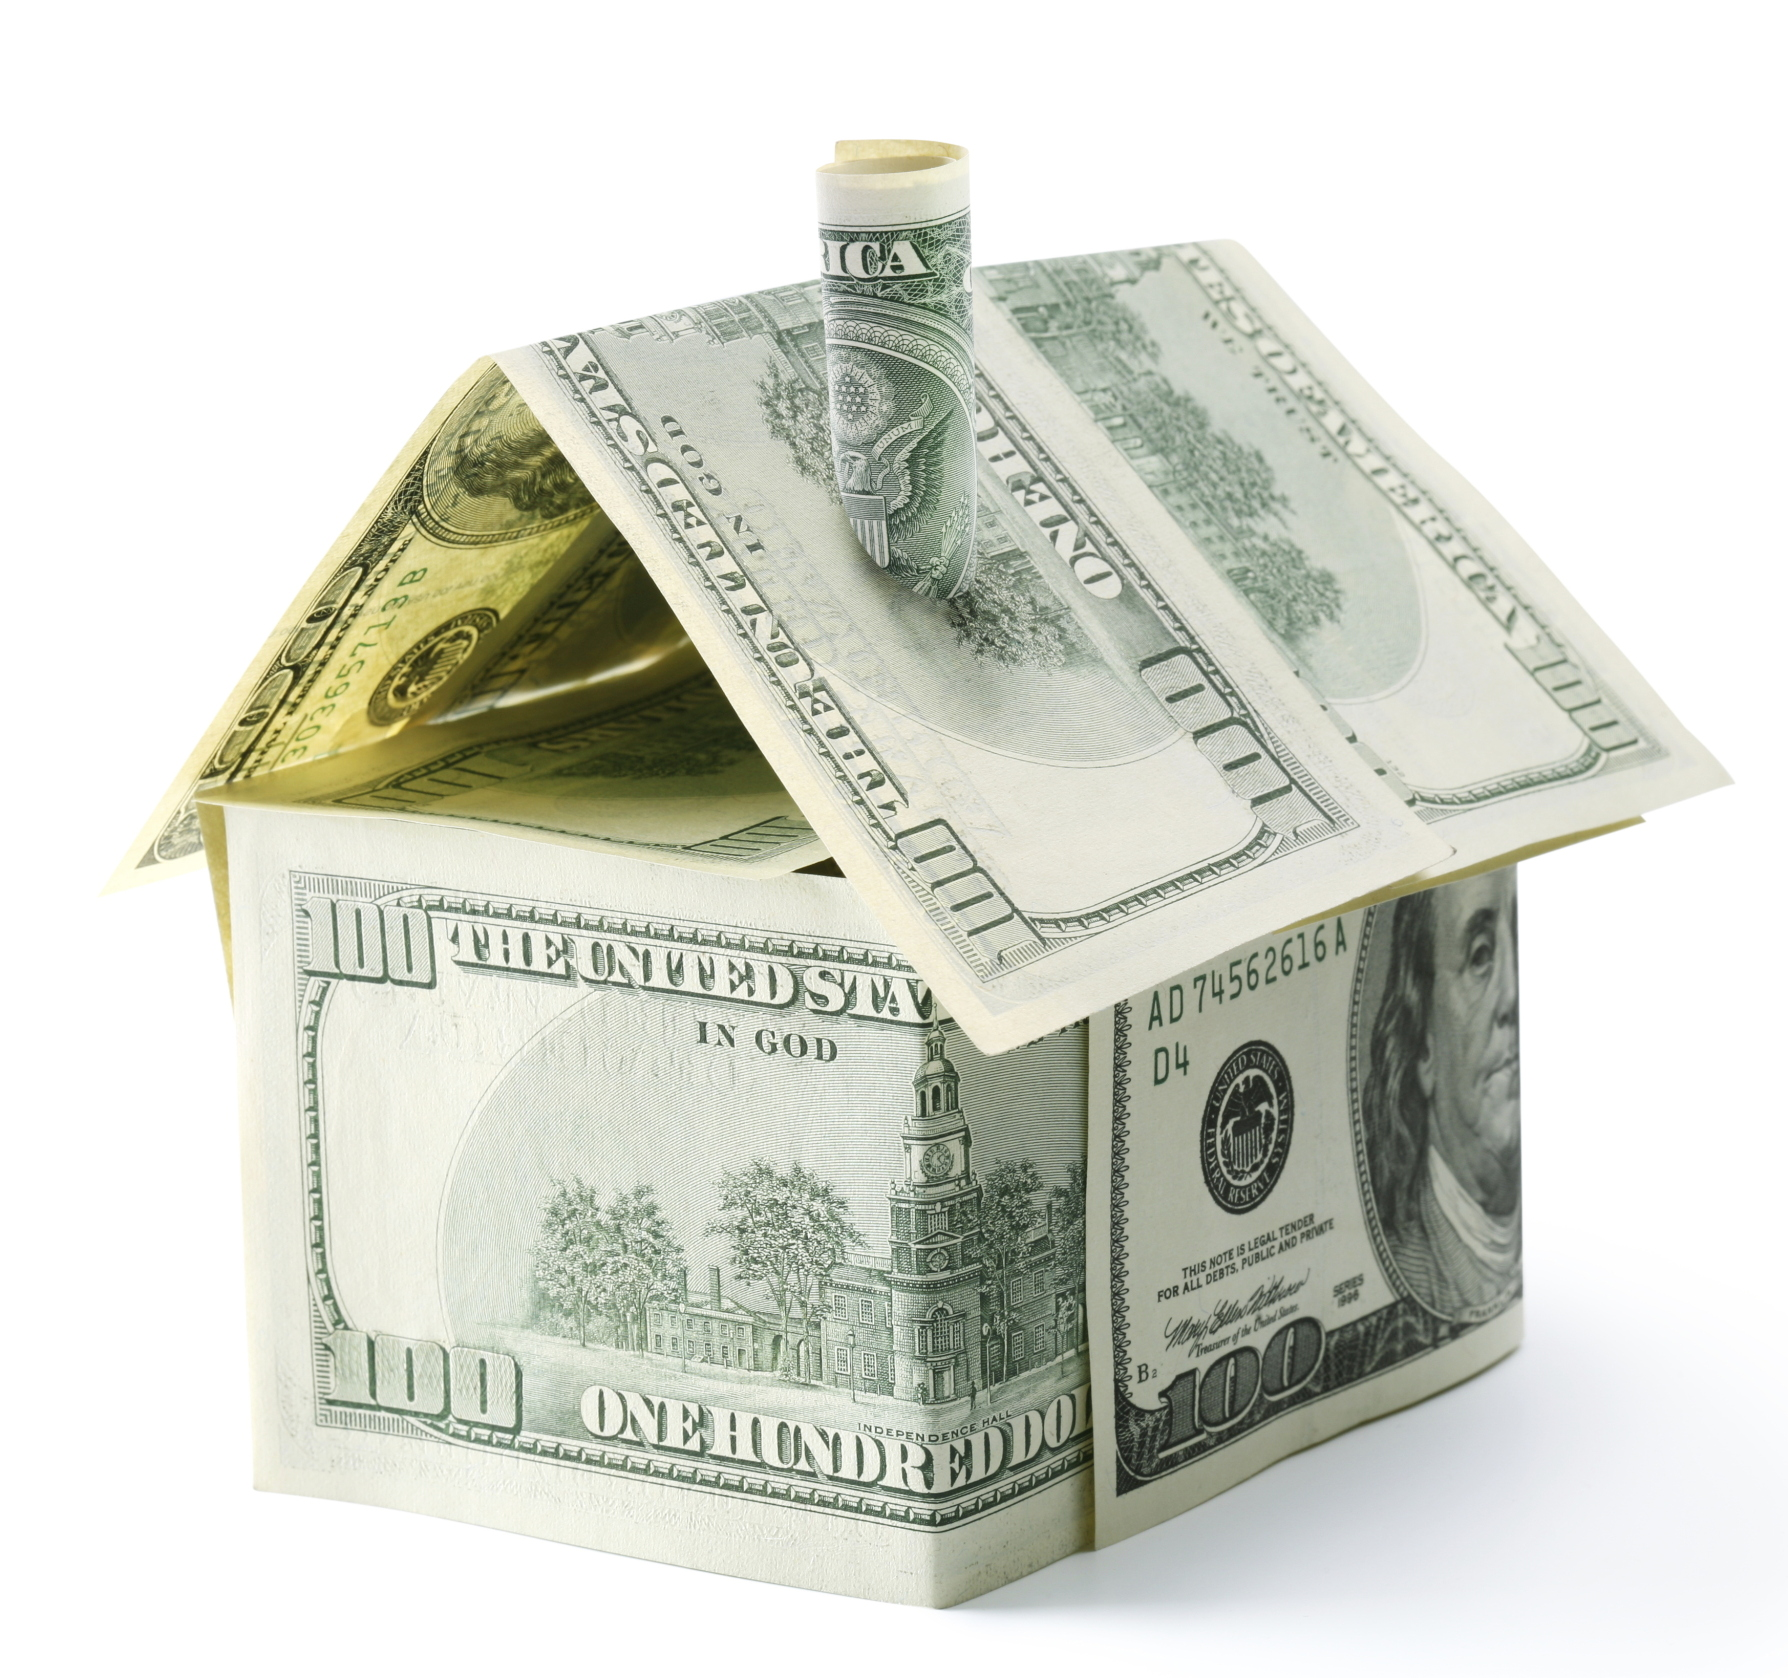 https://i1.wp.com/nationalmortgageprofessional.com/sites/default/files/All_Cash_Home_Sales_Pic.jpg